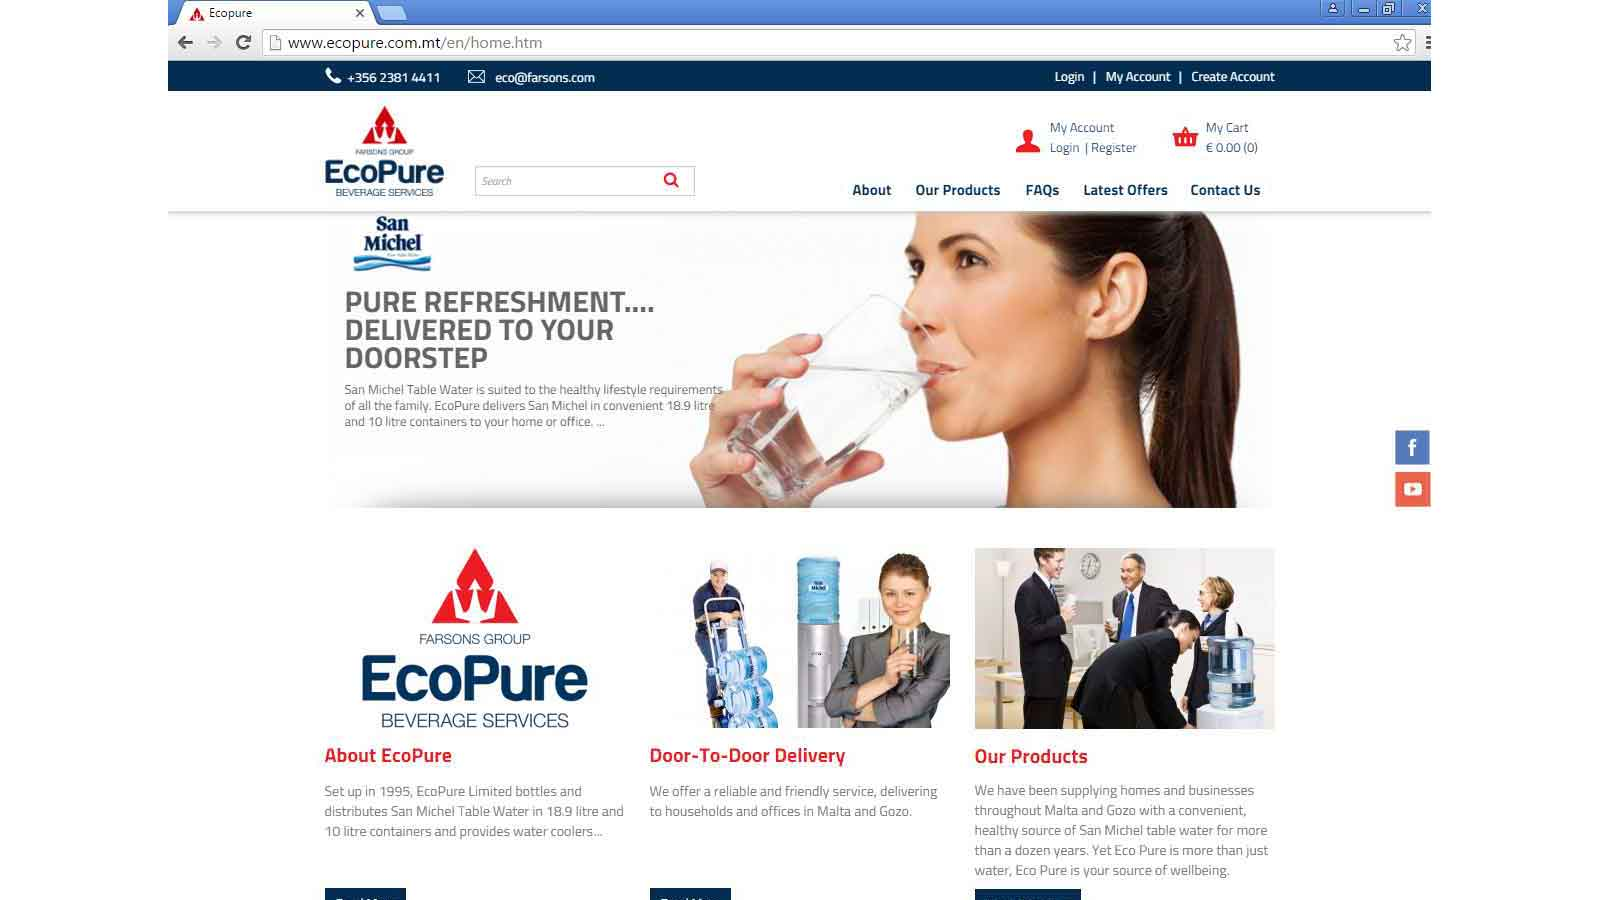 EcoPure launches website